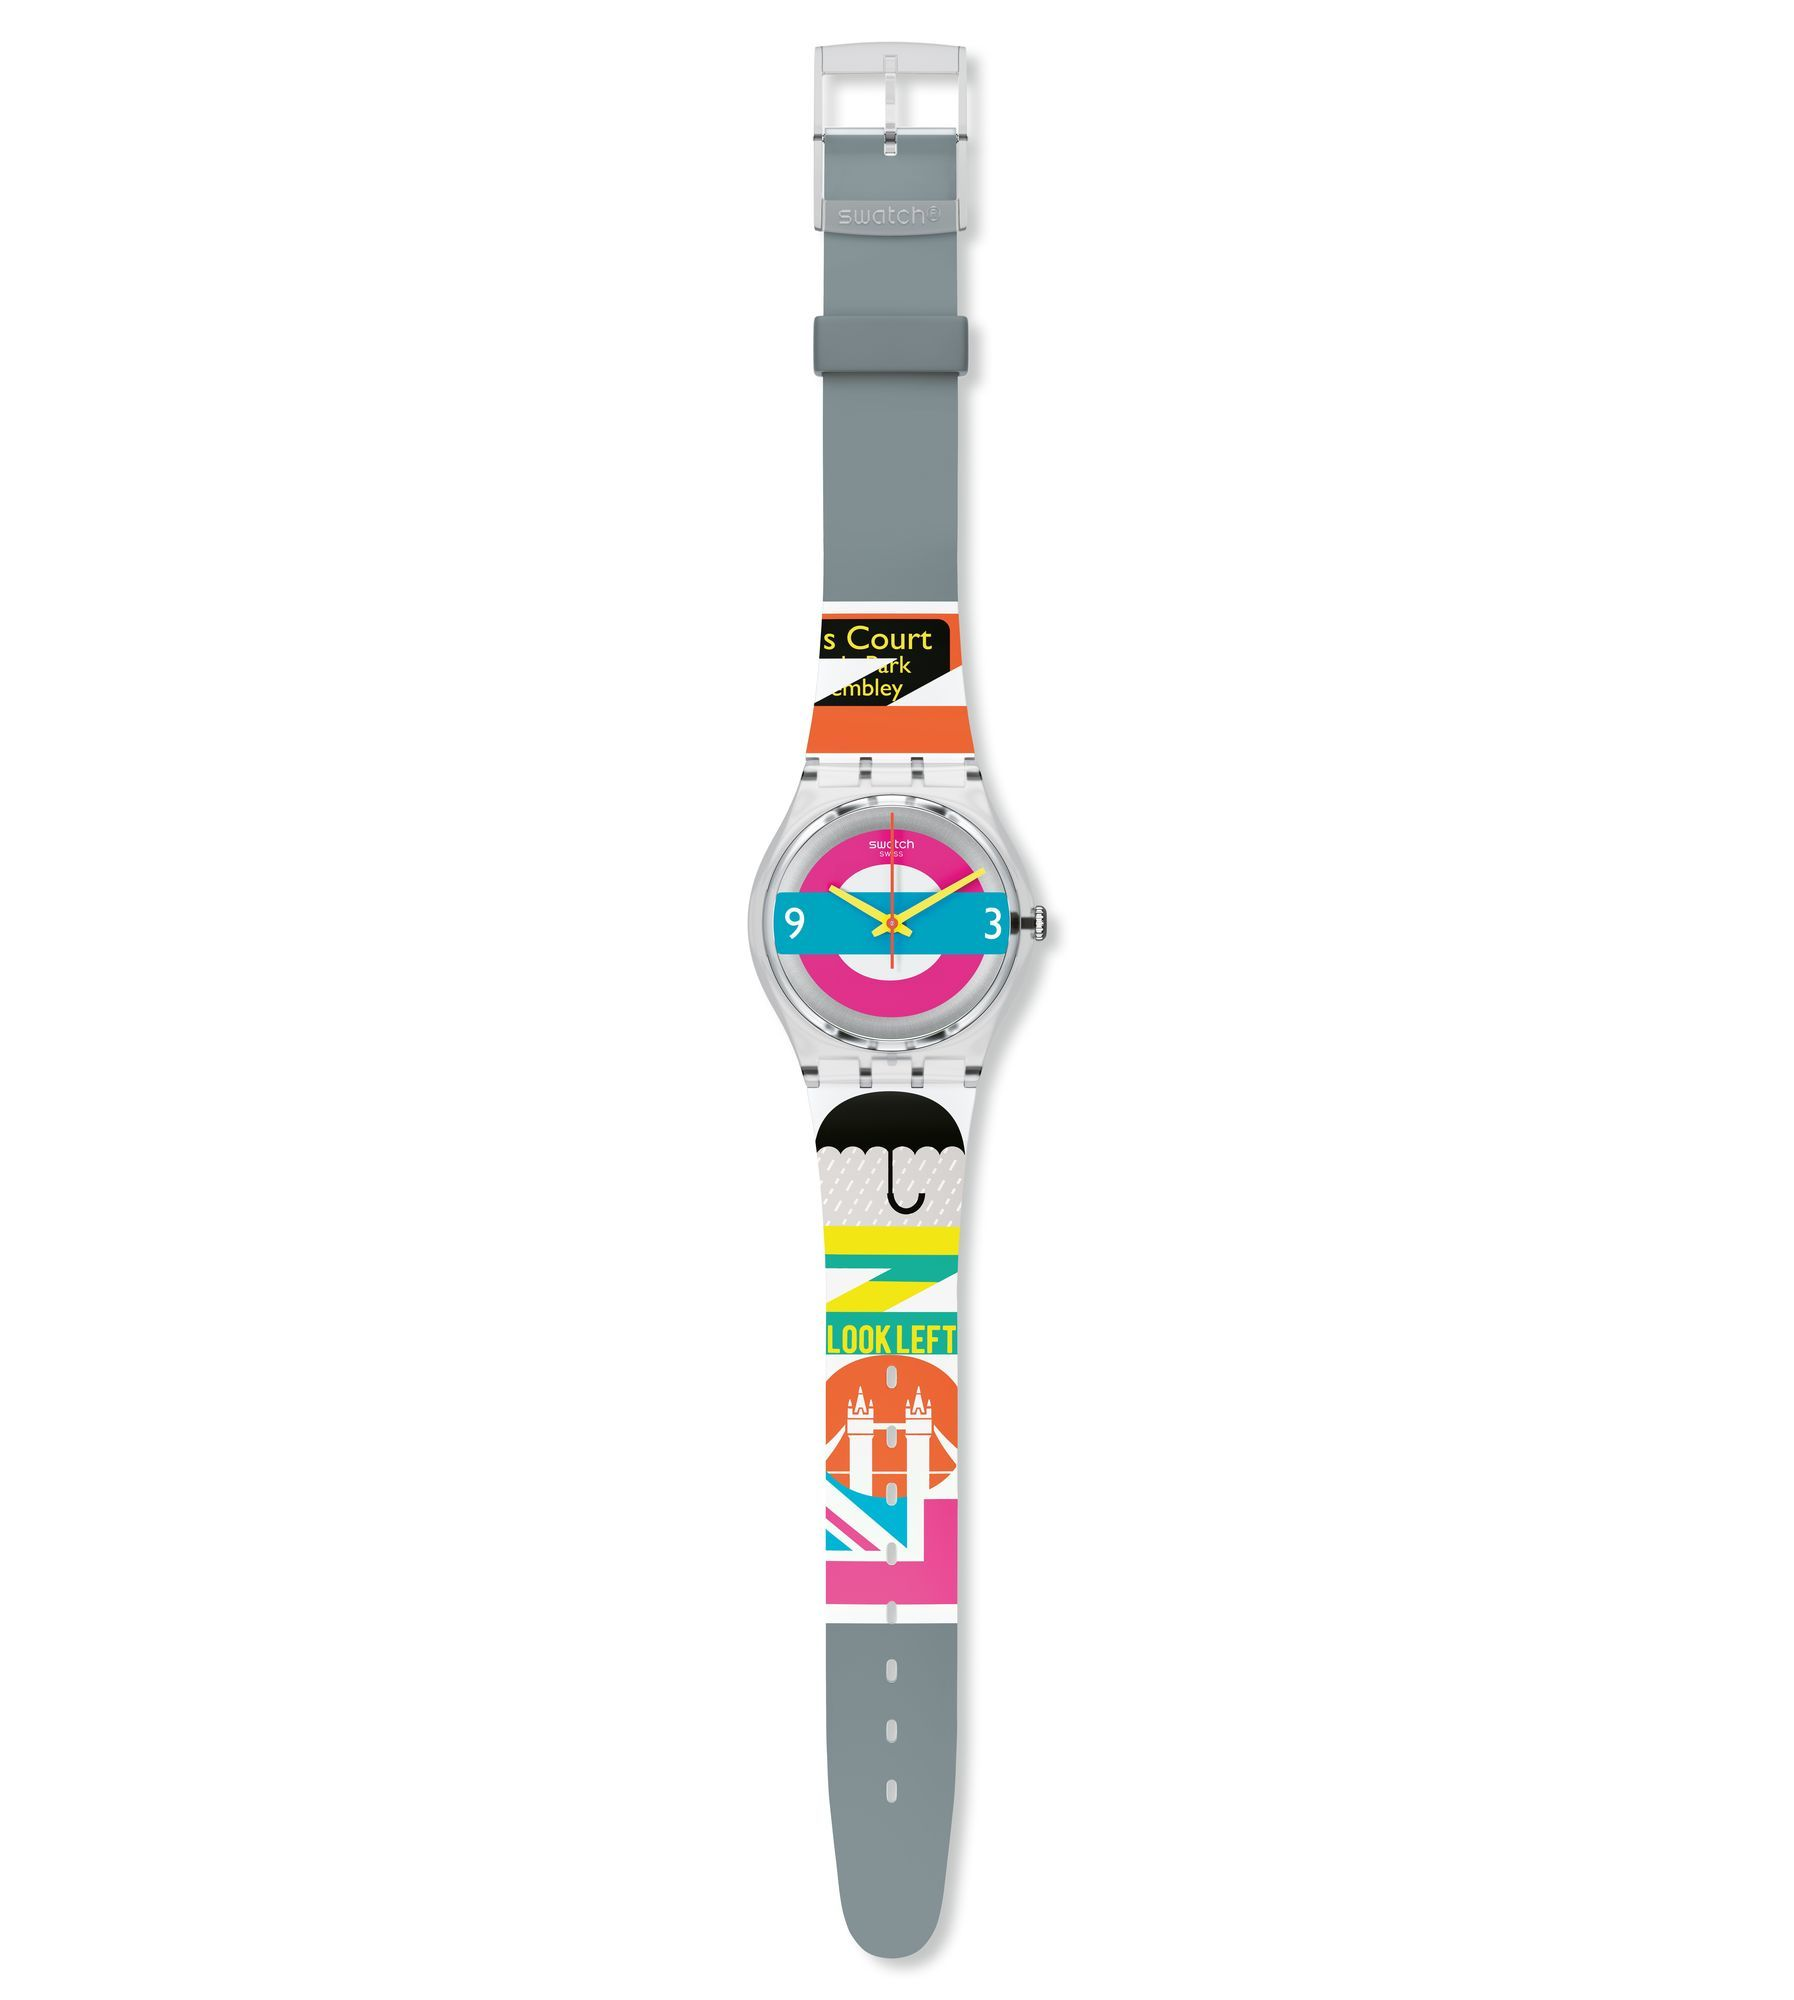 swatch watch watches switch visual product design retail merchandising project